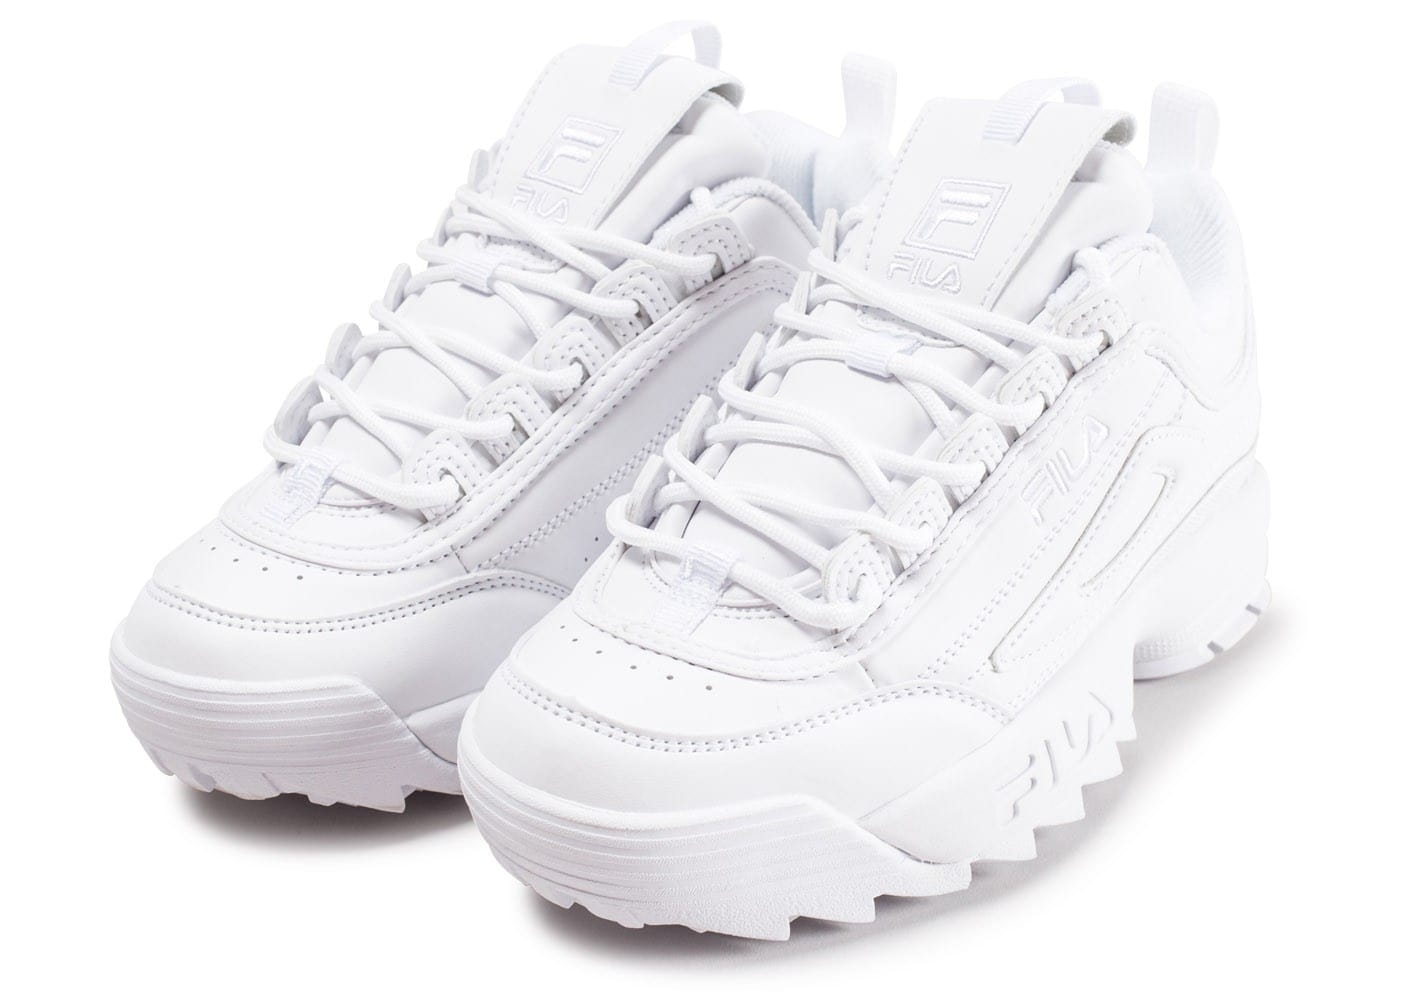 9b2bf5f9c2e Chaussures Fila Disruptor II junior blanche vue intérieure ...